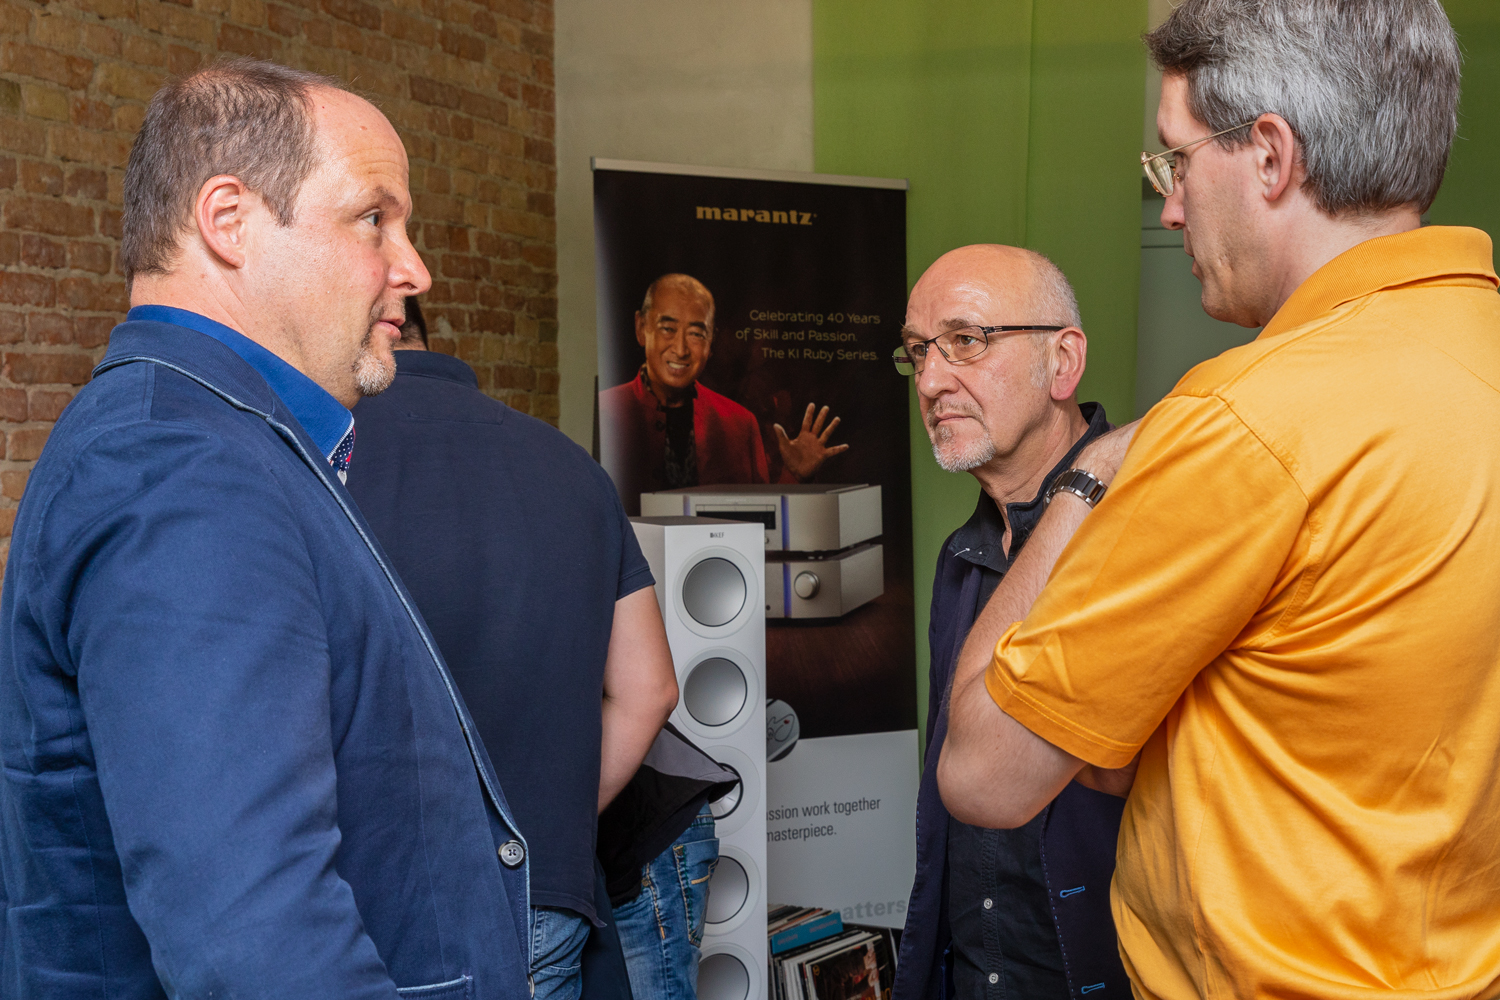 hifi-im-hinterhof-berlin-hifi-and-friends-messe-2018-kef-marantz-7